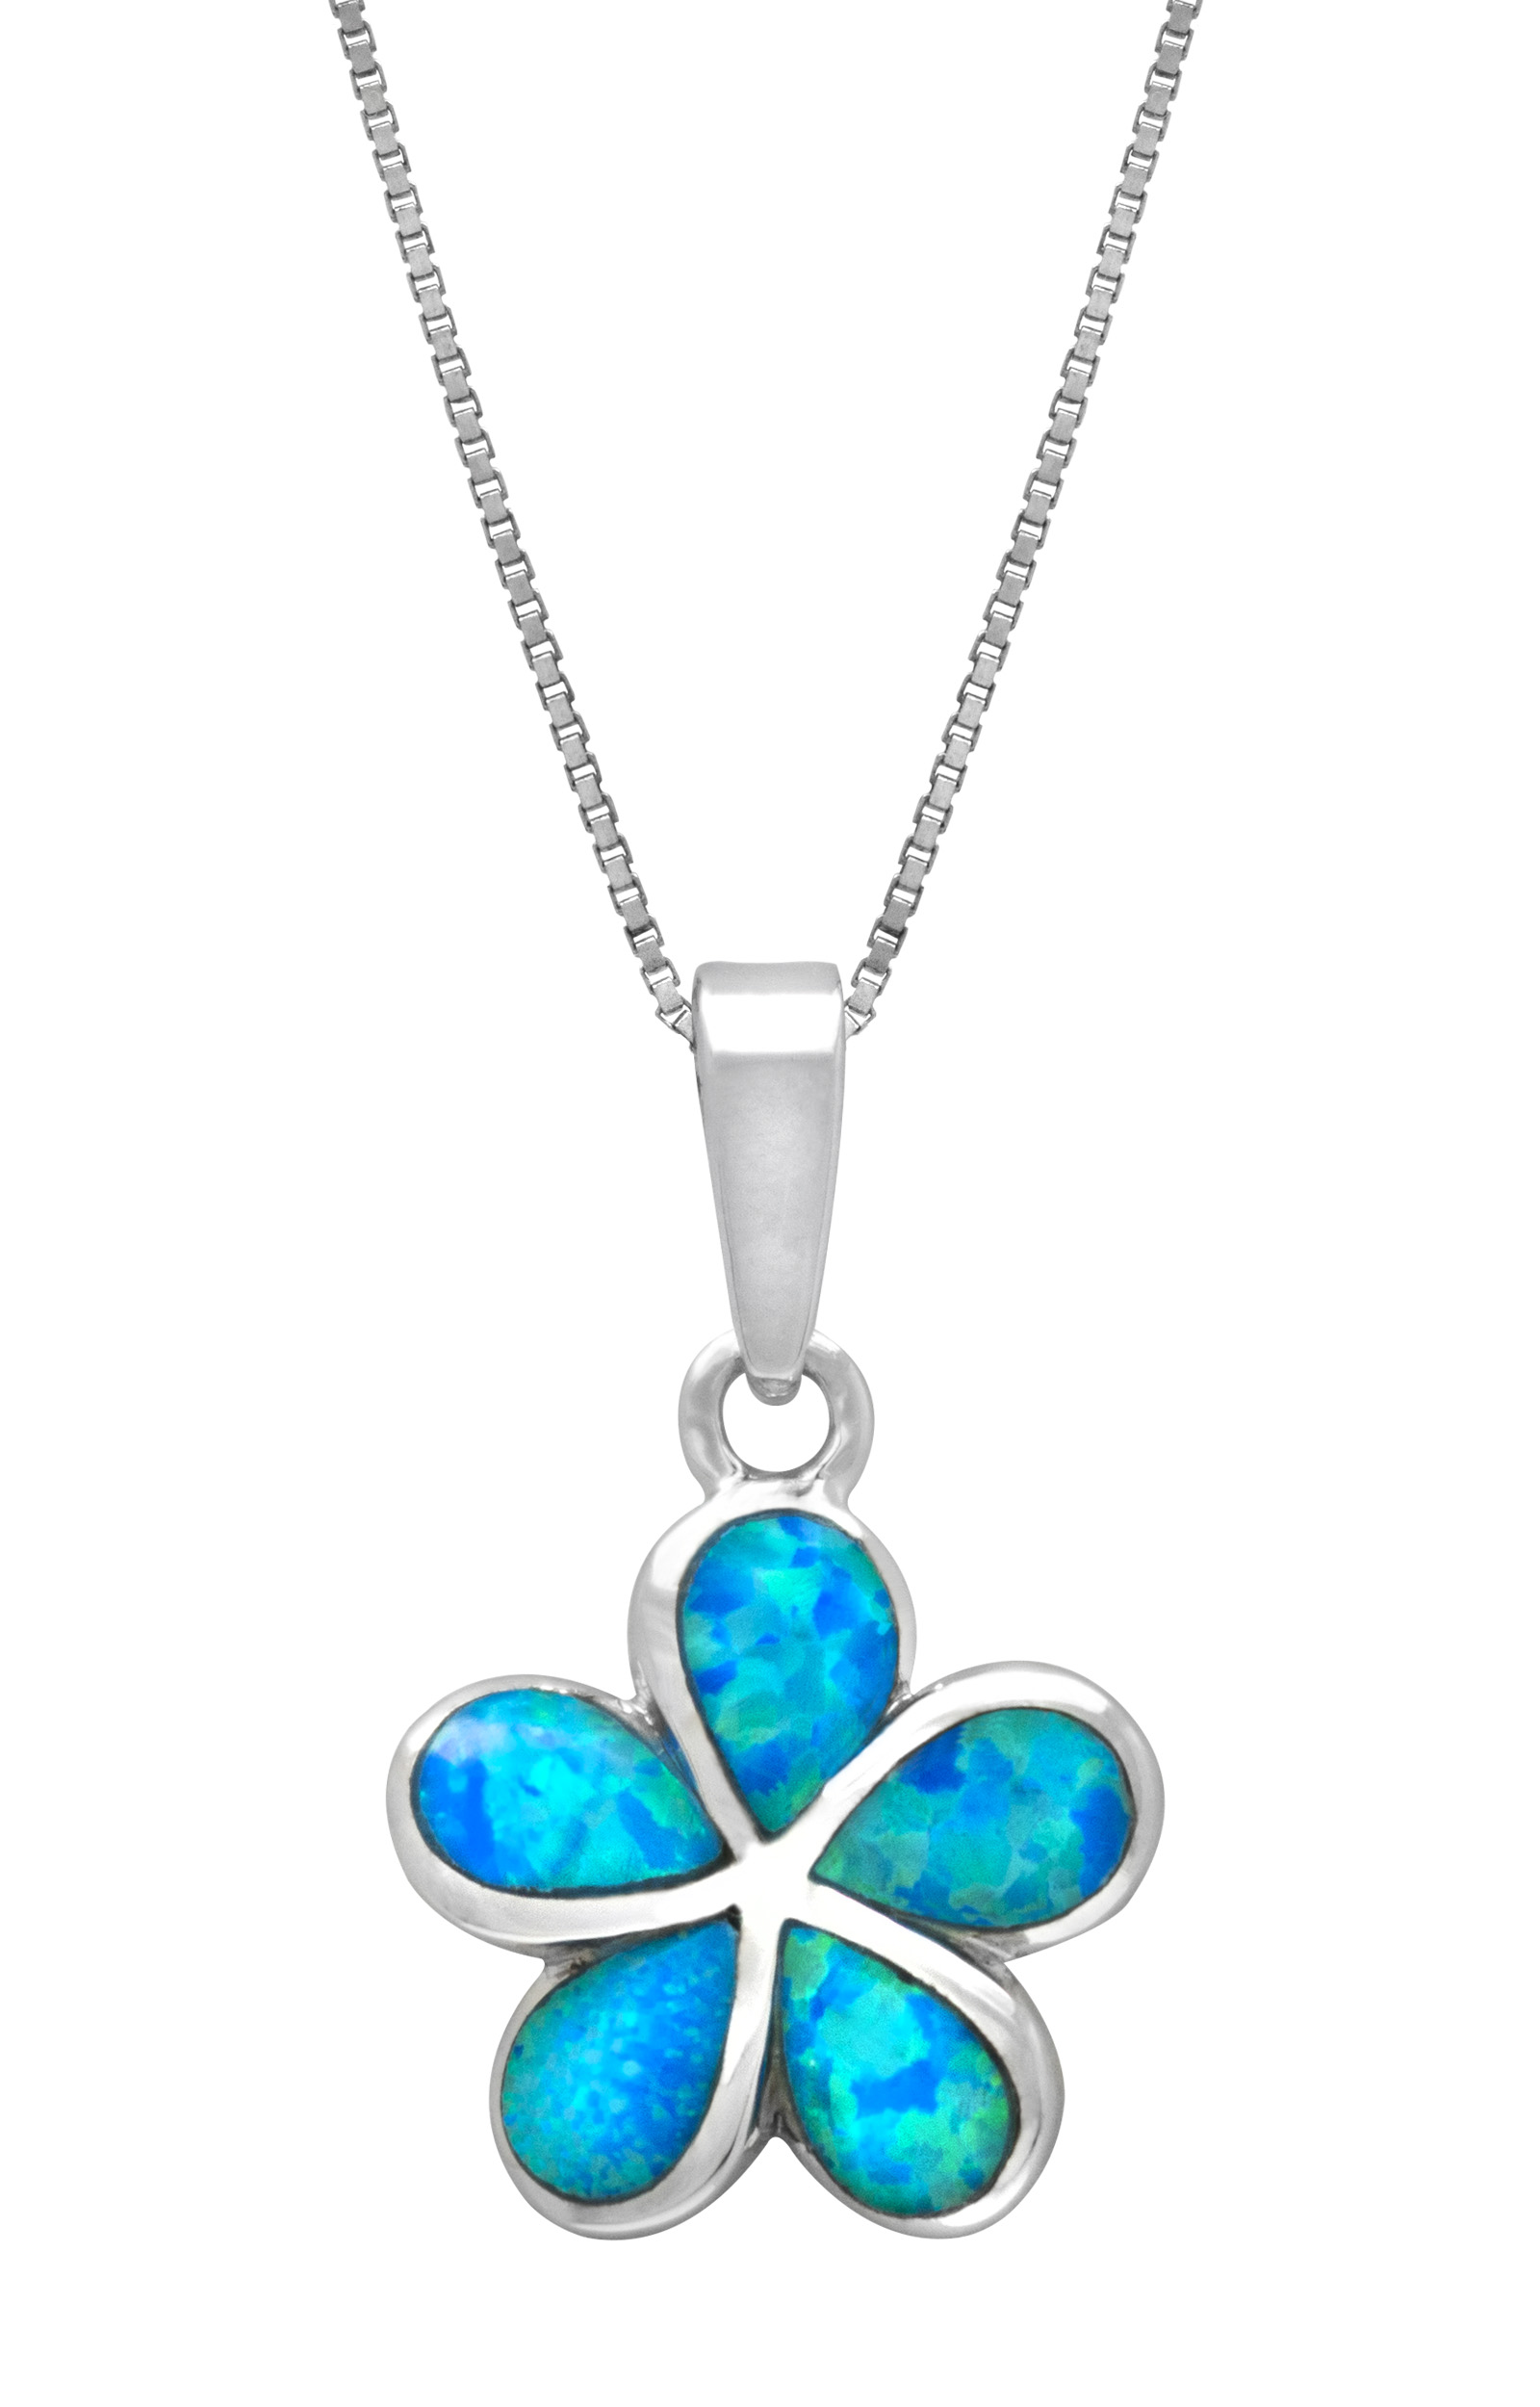 Sterling Silver Plumeria Flower Necklace Pendant with Synthetic Blue Opal by